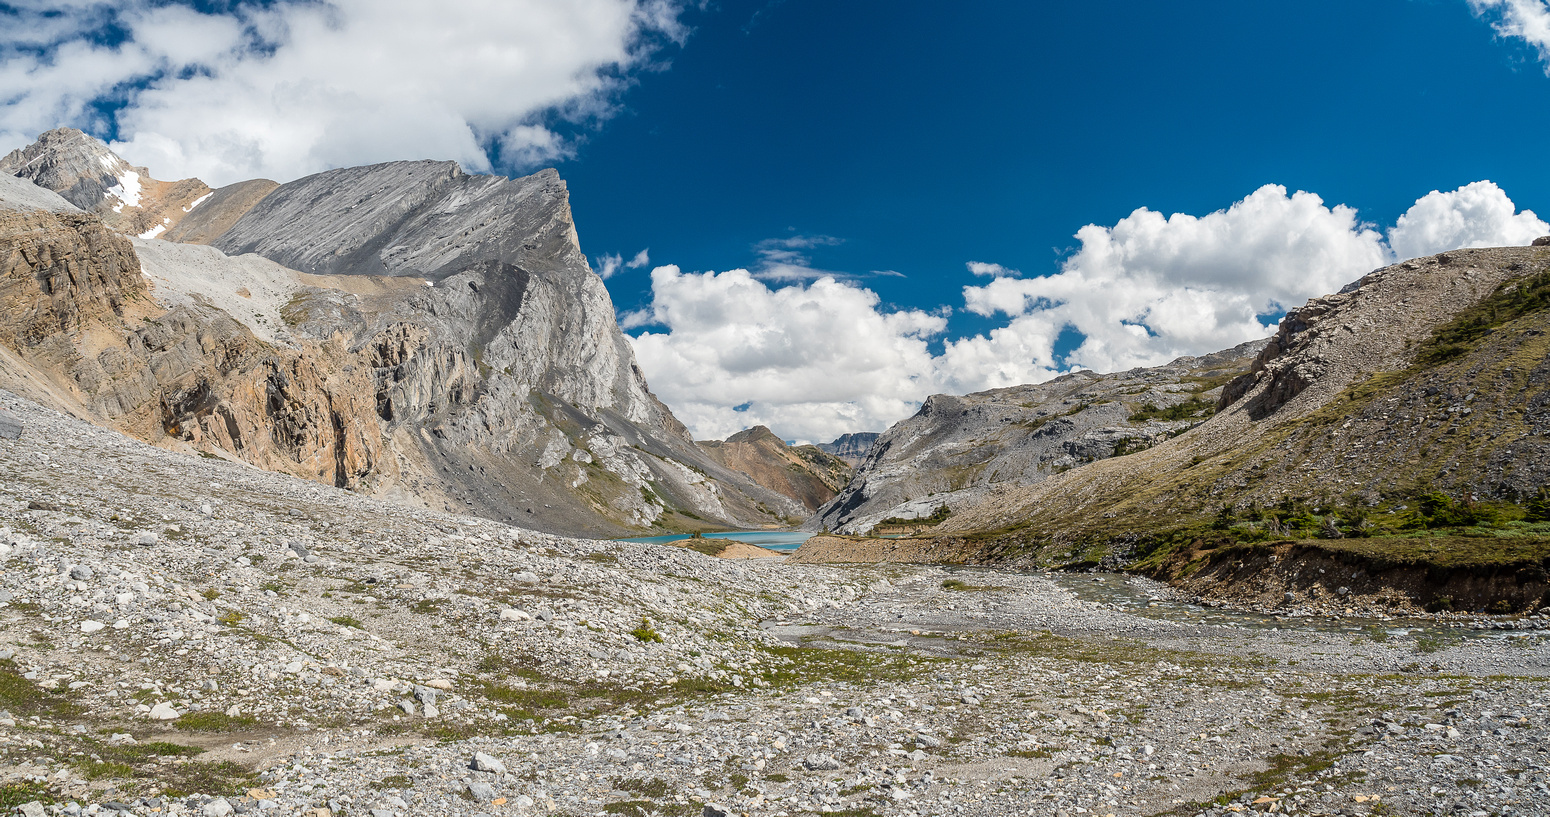 Aries Peak shows up at upper left with Capricorn Lake visible at center in this view looking back from the moraines.